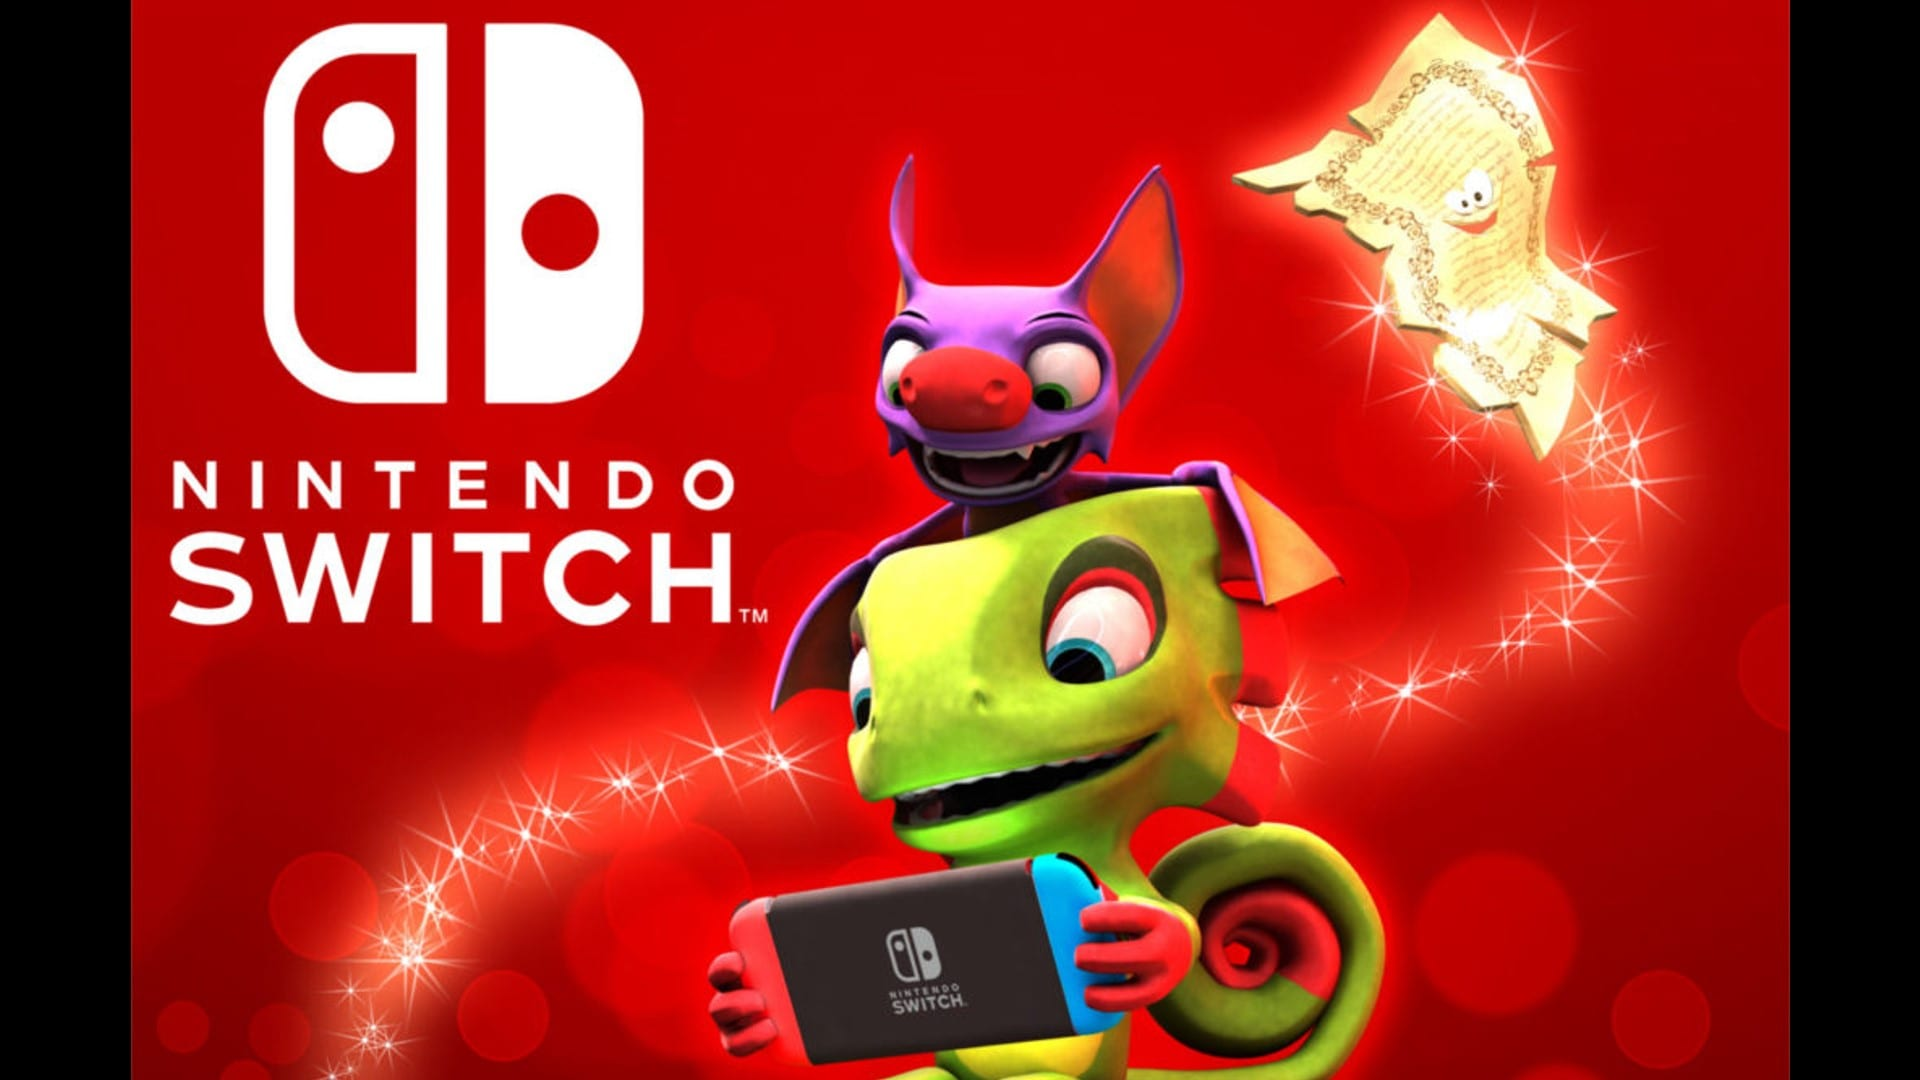 Yooka-Laylee Coming to Nintendo Switch in December